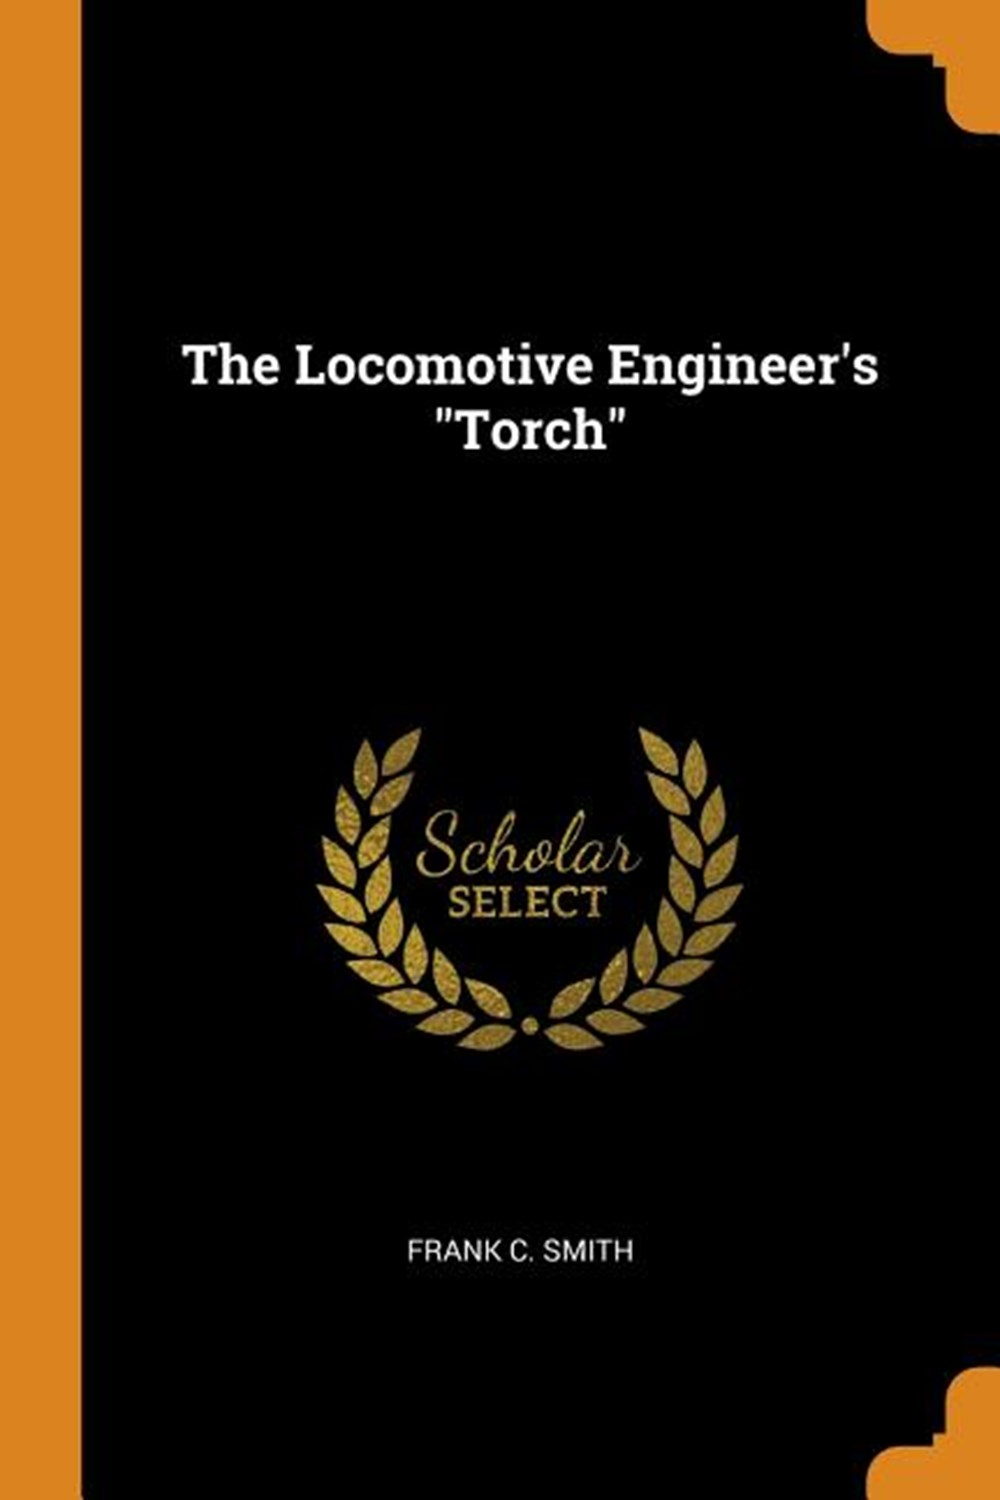 Locomotive Engineer's Torch